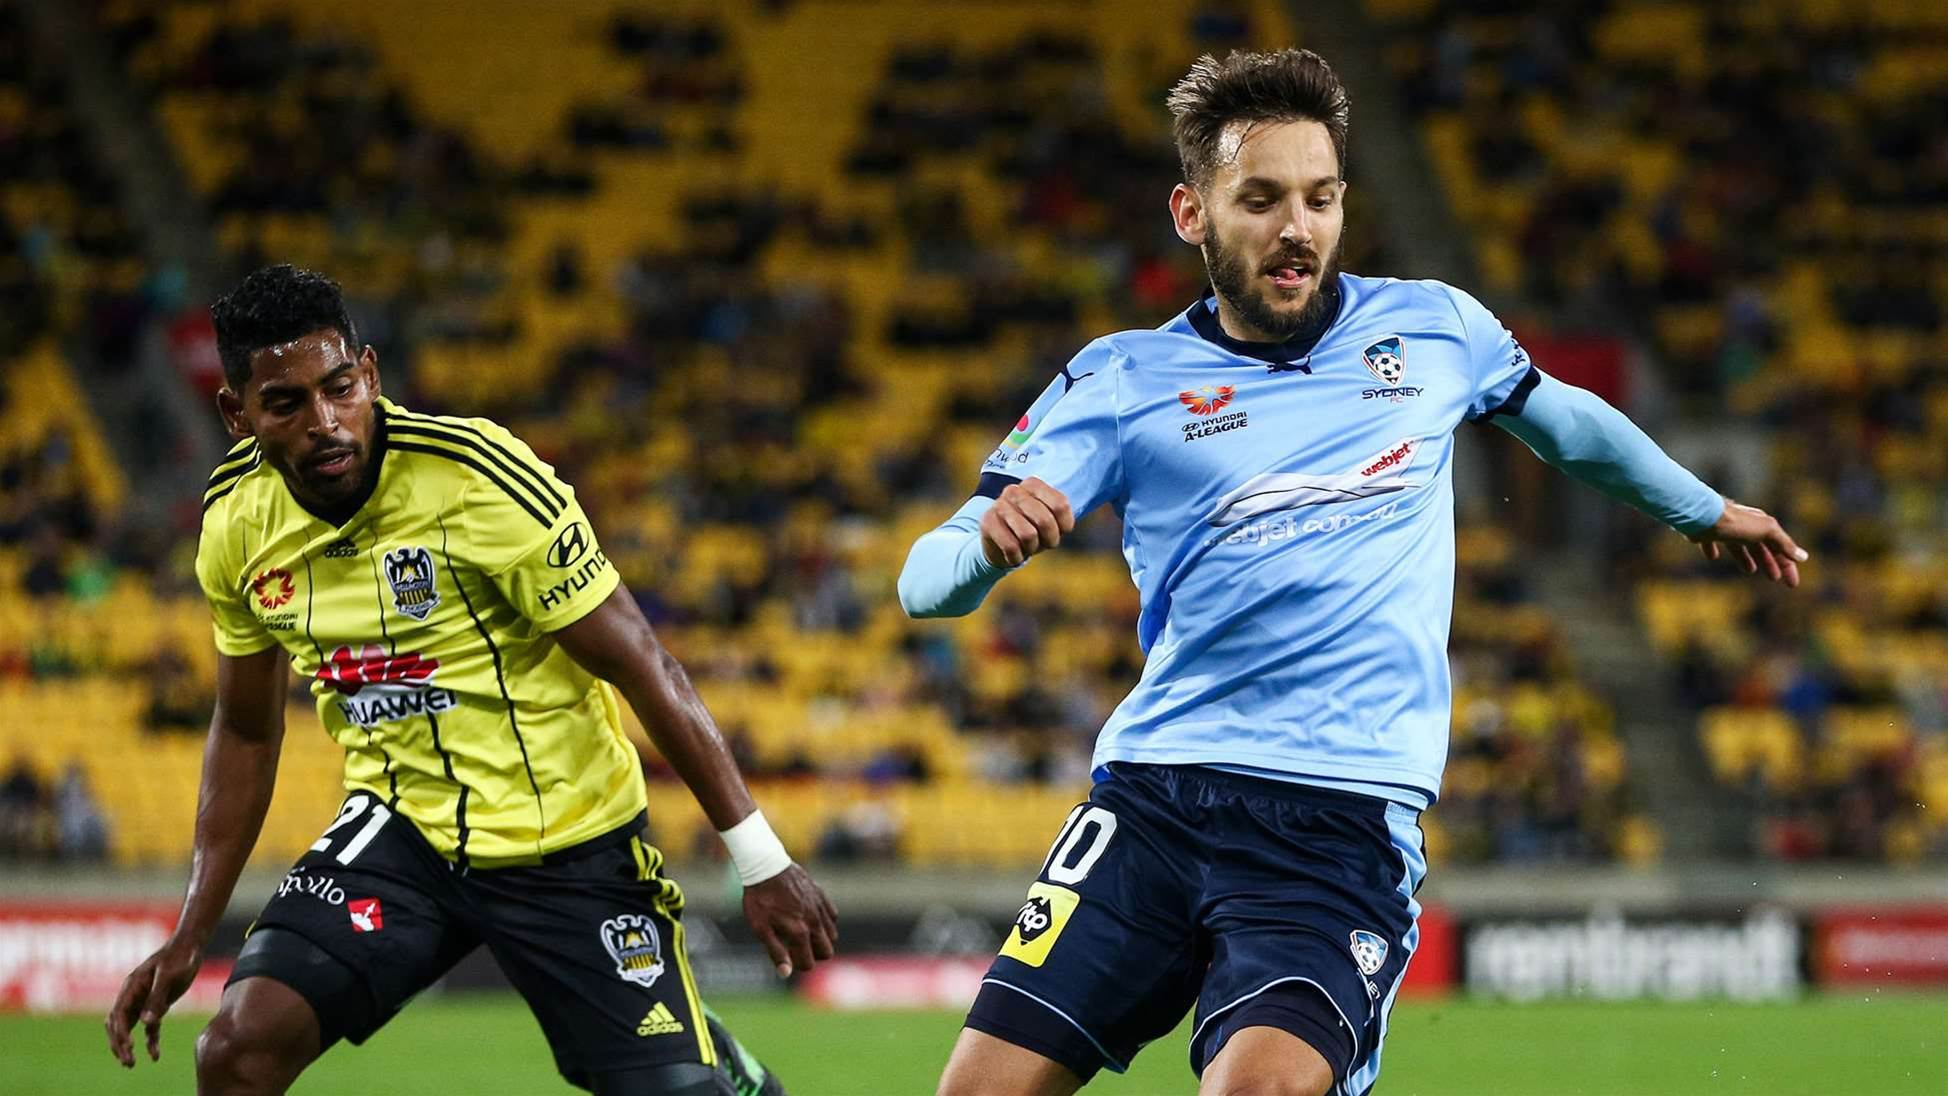 Sydney strike late to stun Nix